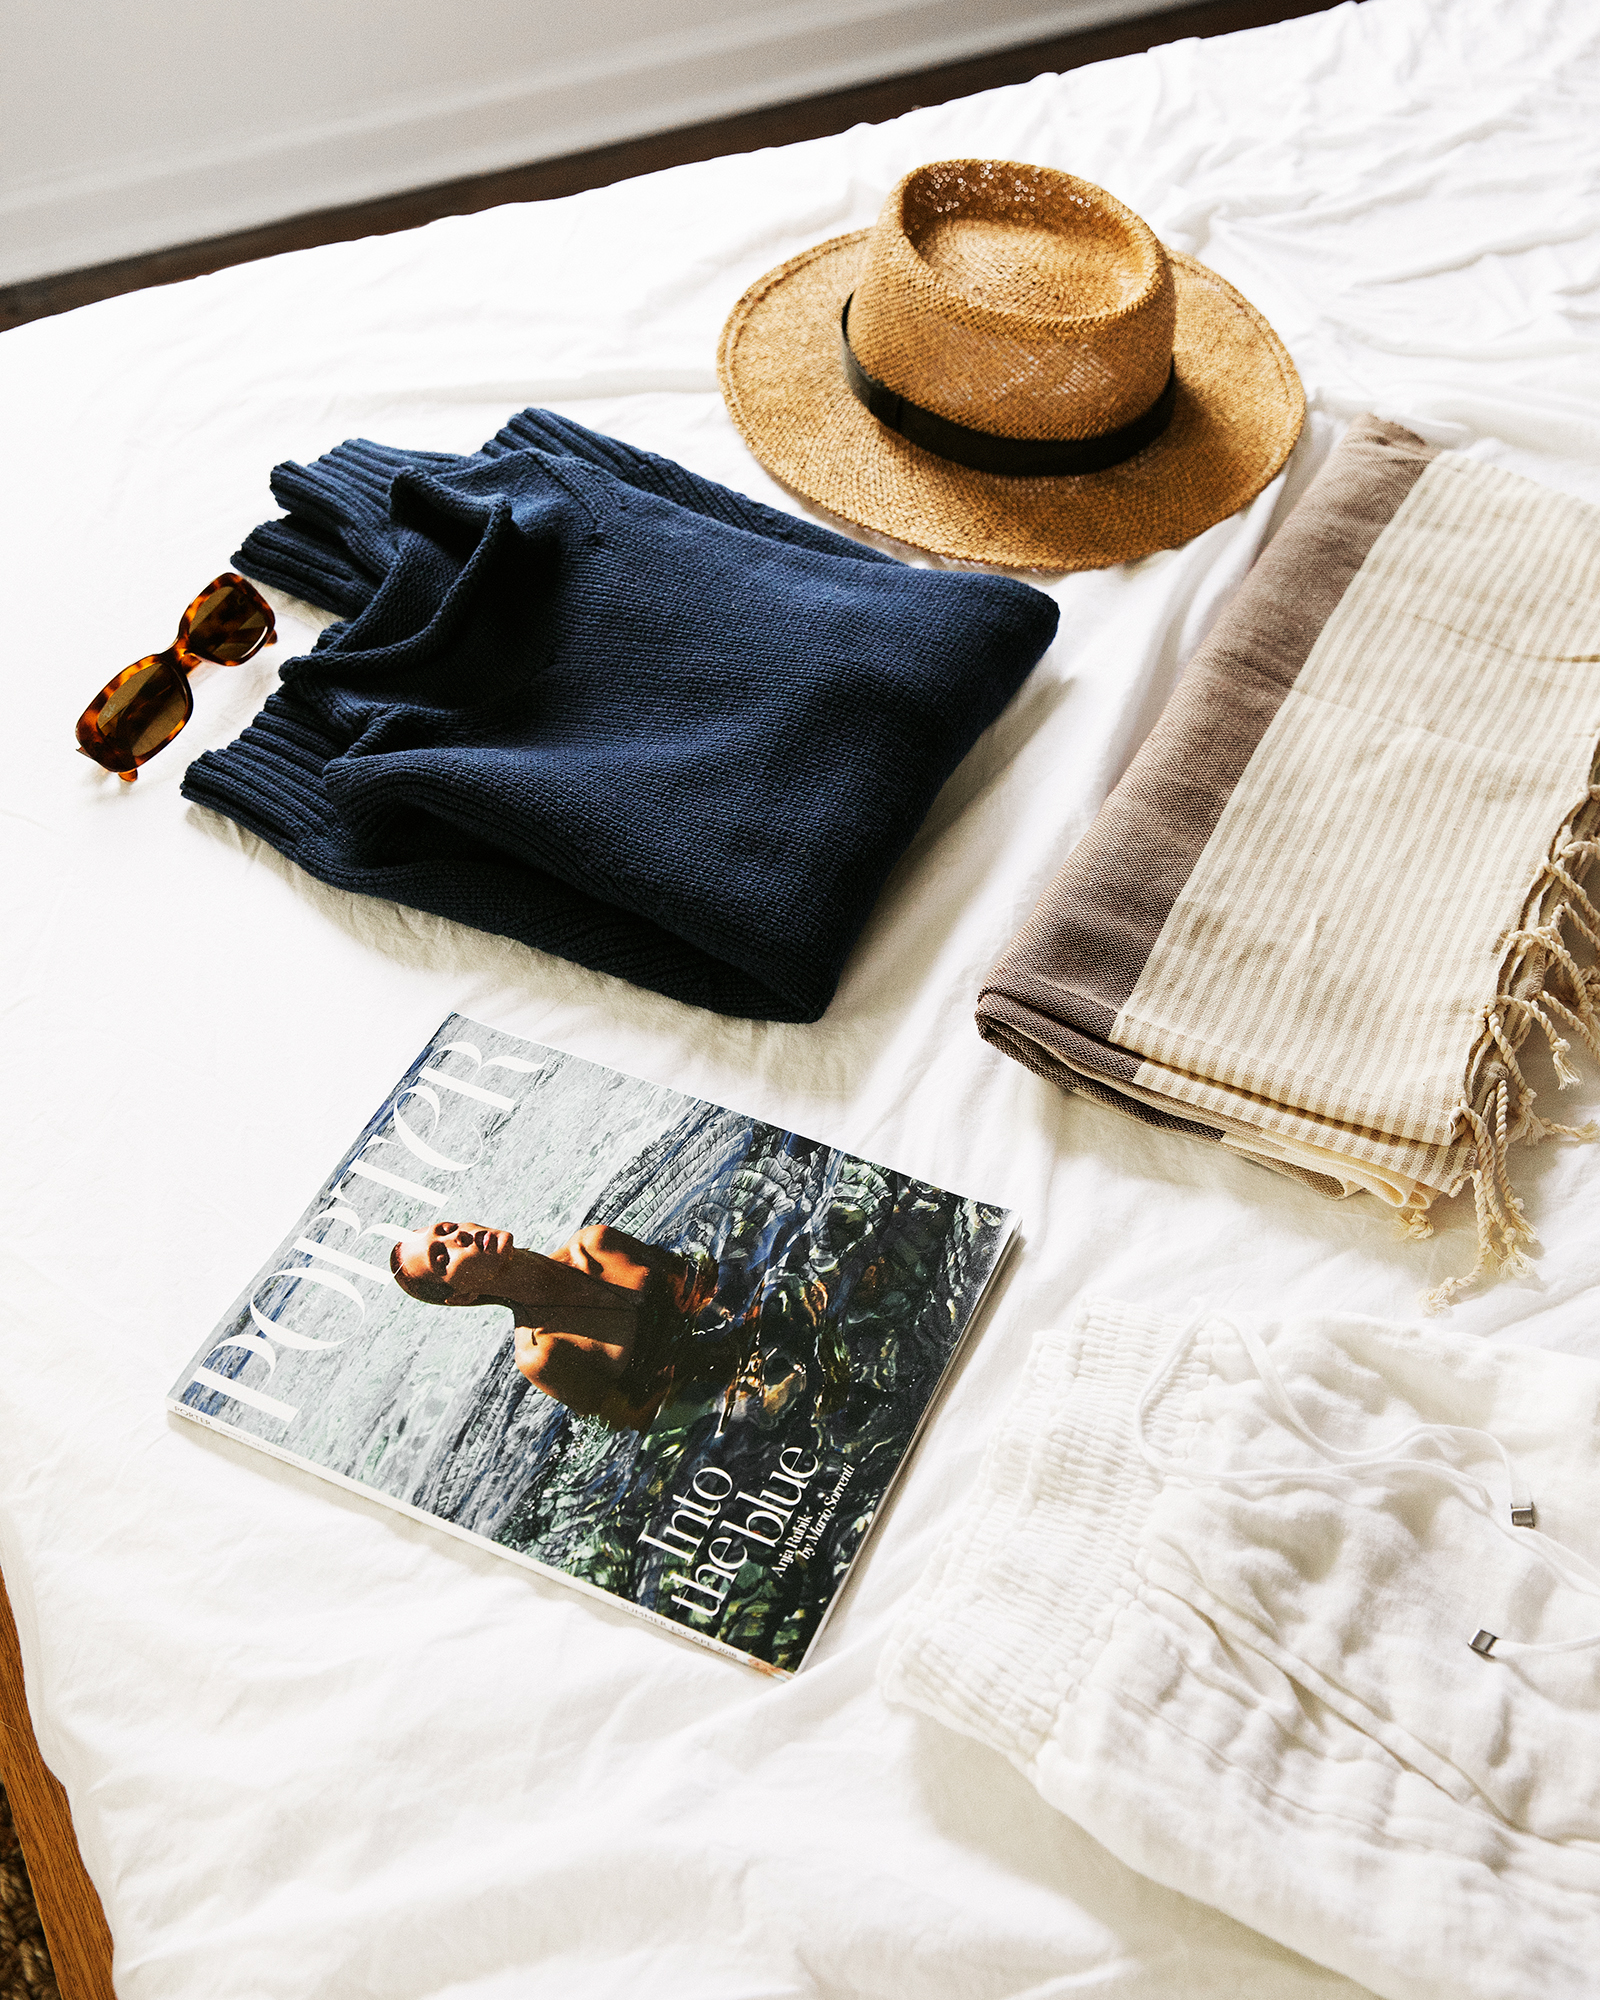 vacation packing - for a week of boats + wine tasting + family gatherings